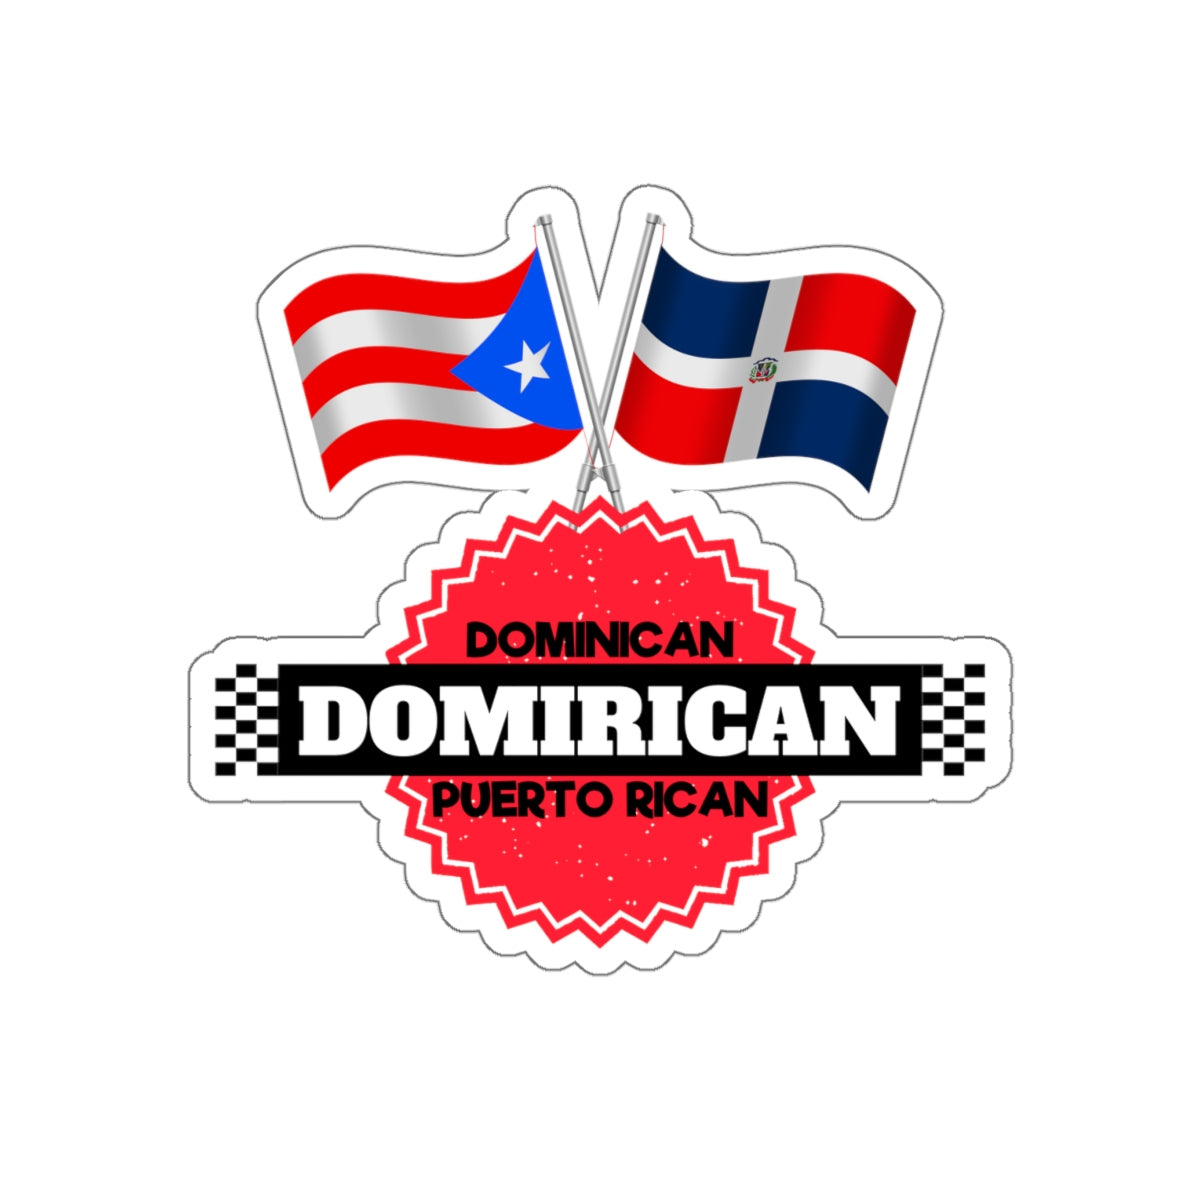 Domirican Kiss-Cut Stickers by Amazing Products eStore